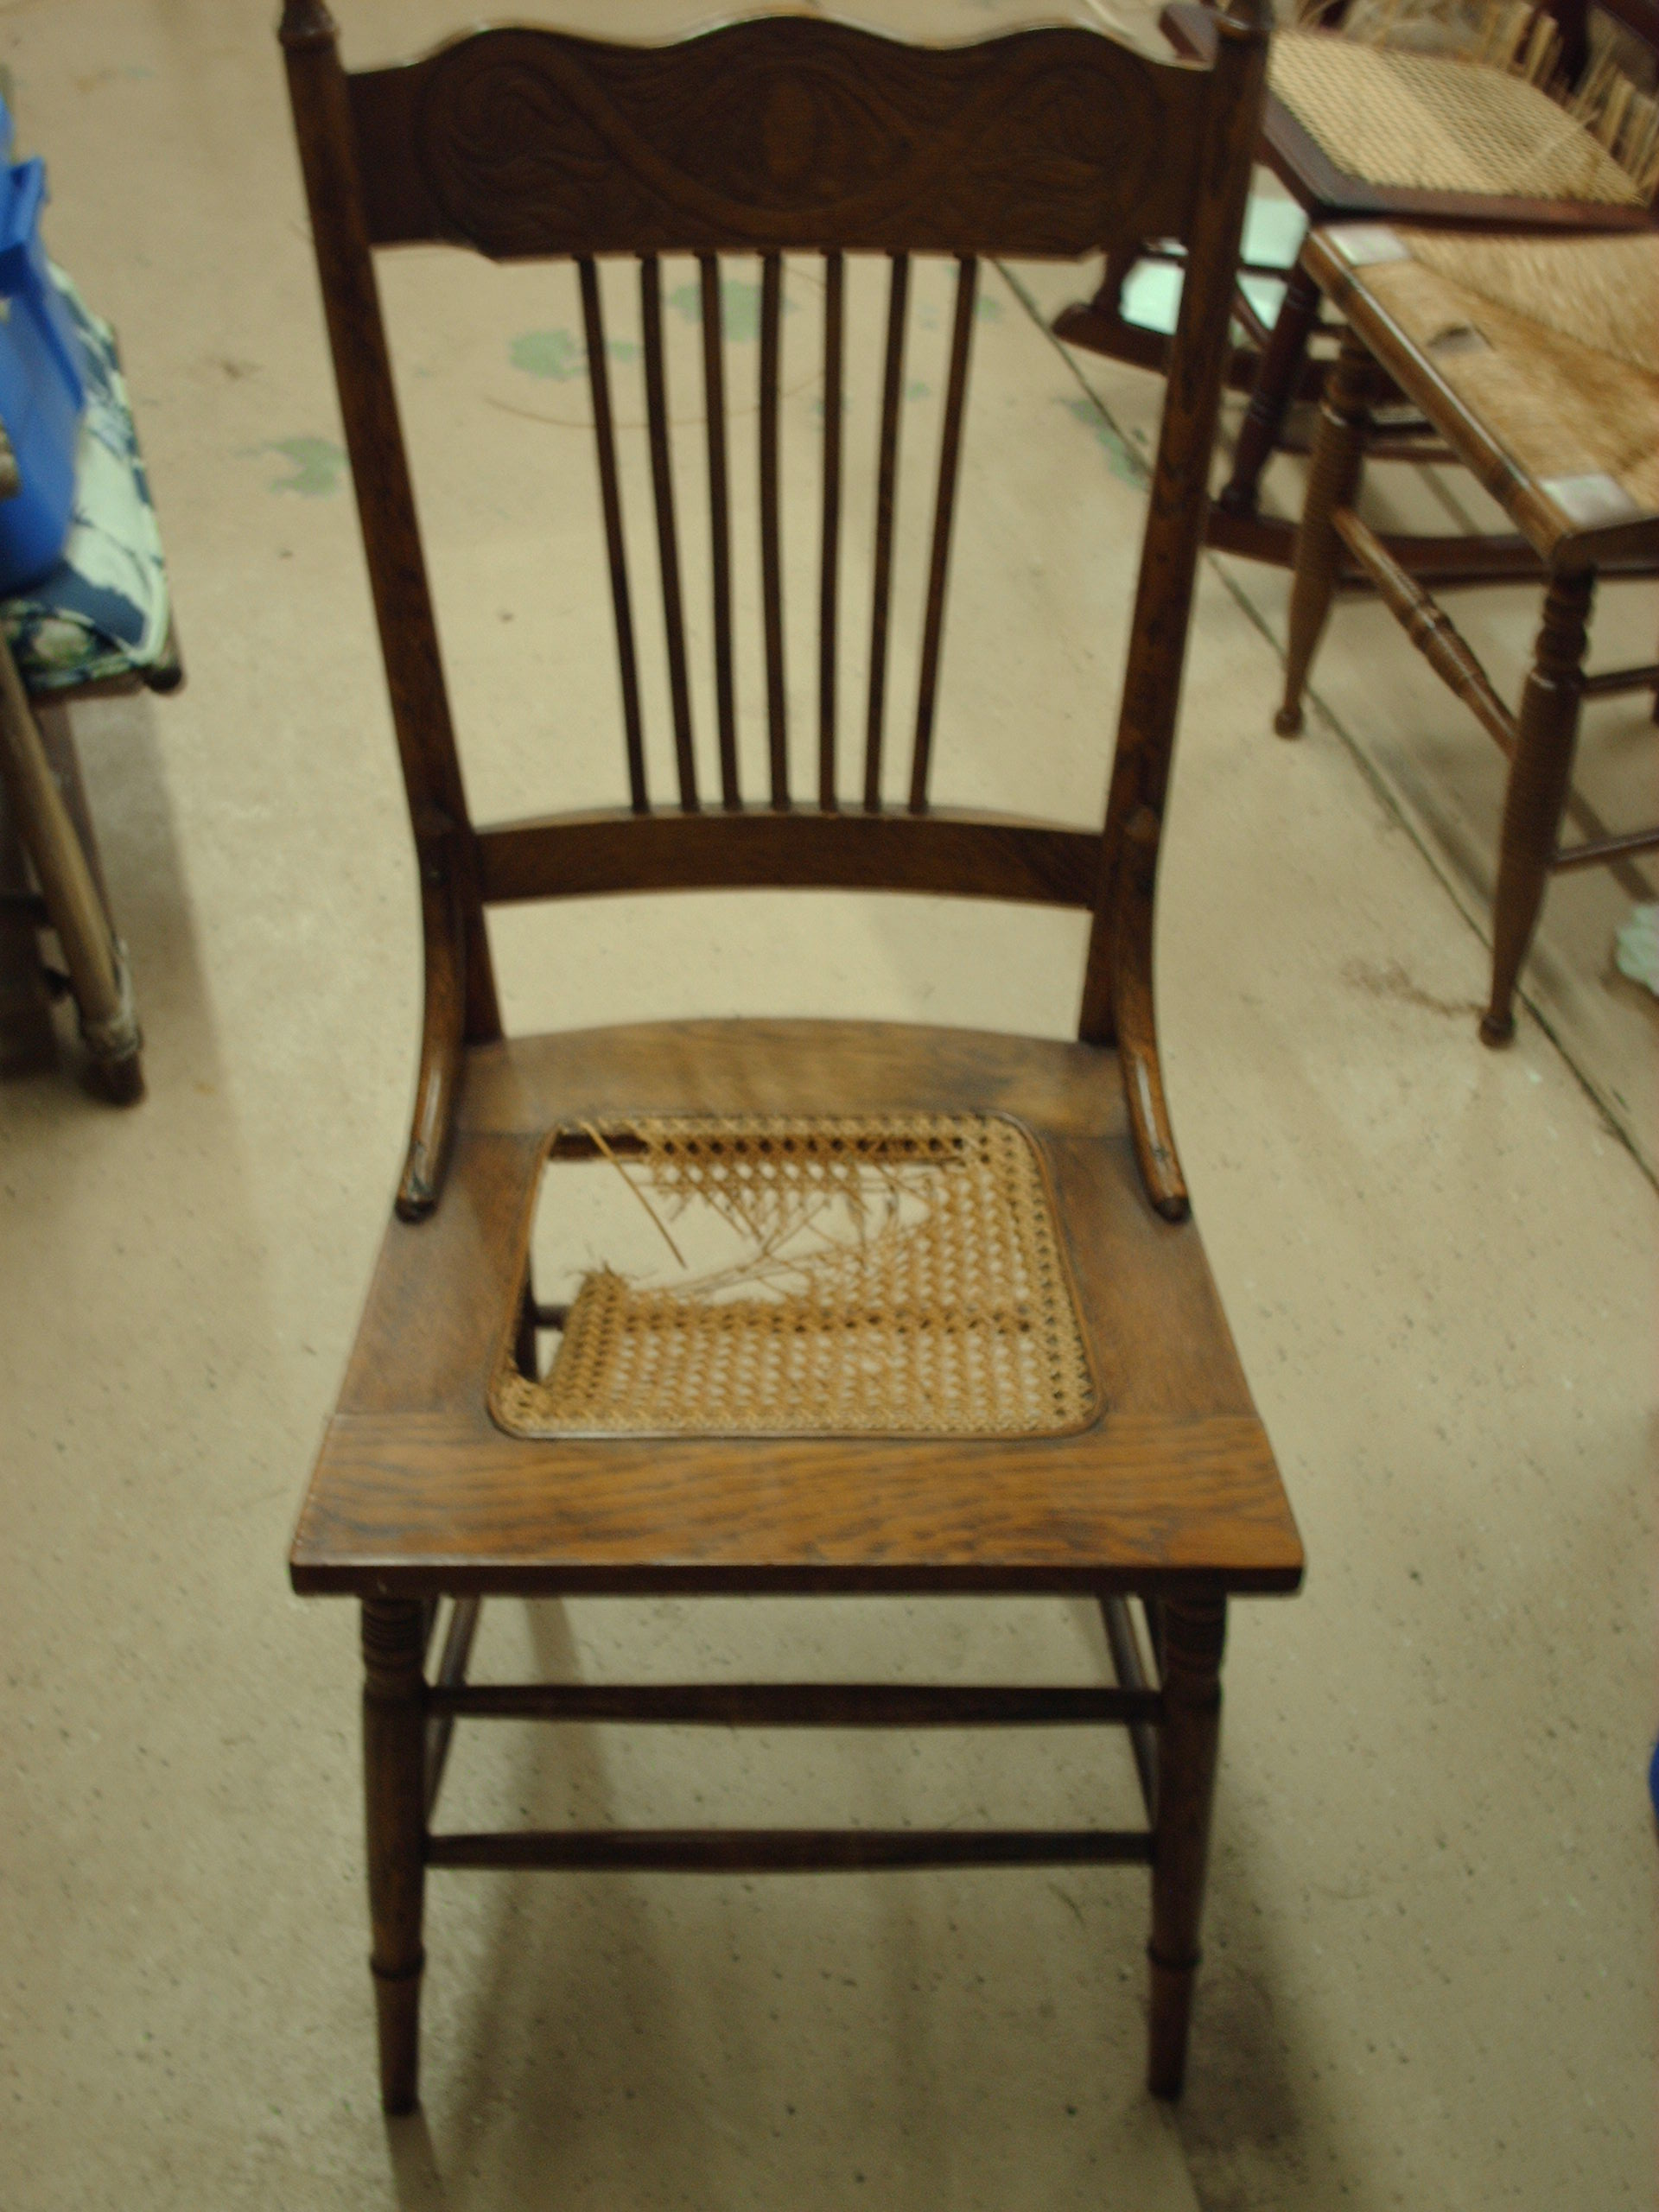 Chair caning supplies - Oak Pressed Cane Chair